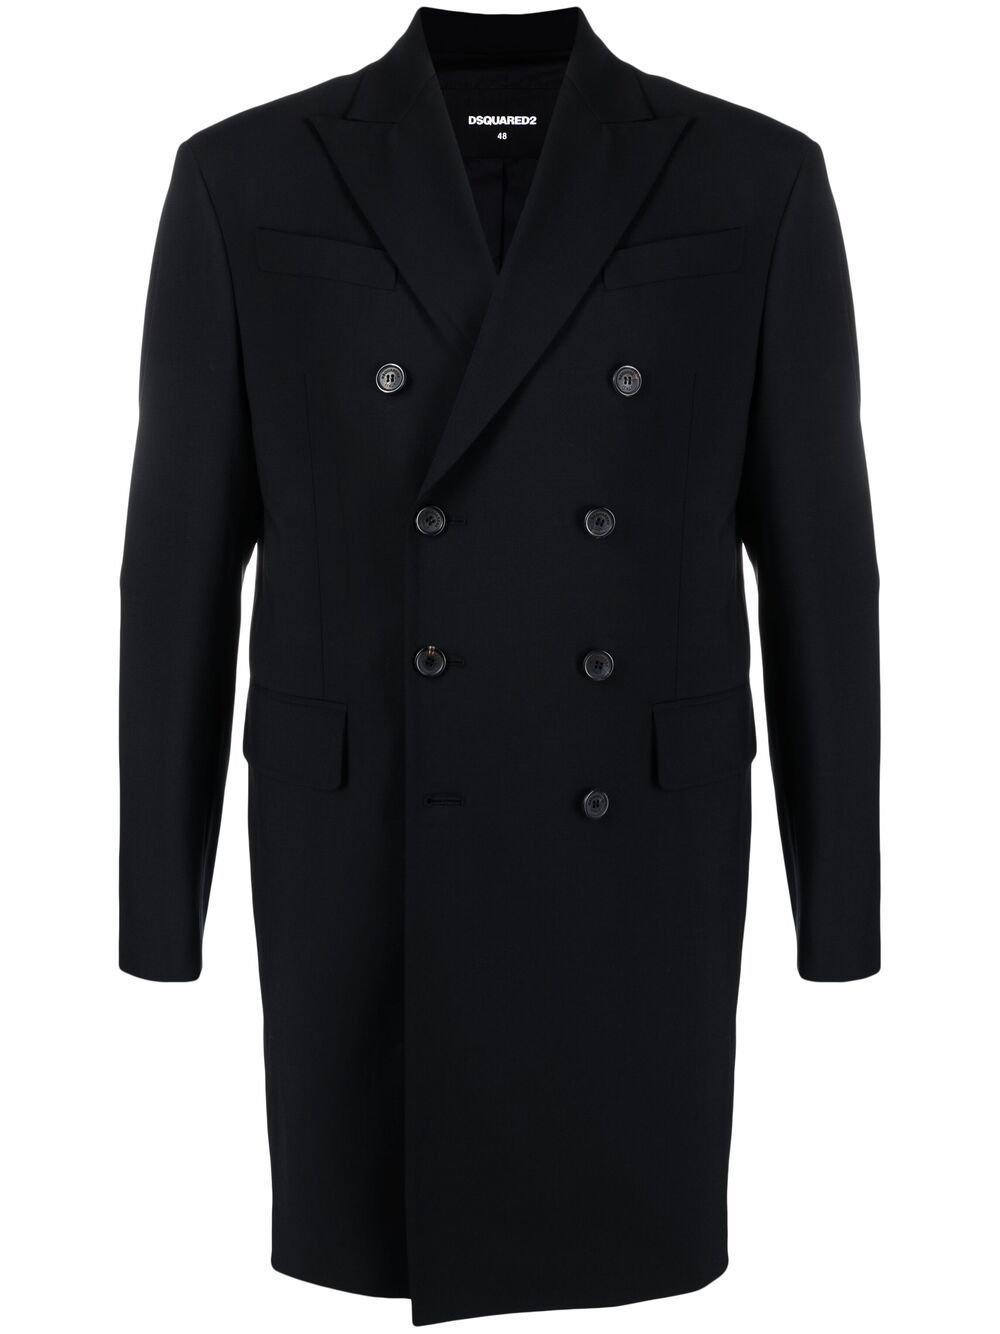 Dsquared2 zip-detail double-breasted coat - Schwarz von Dsquared2